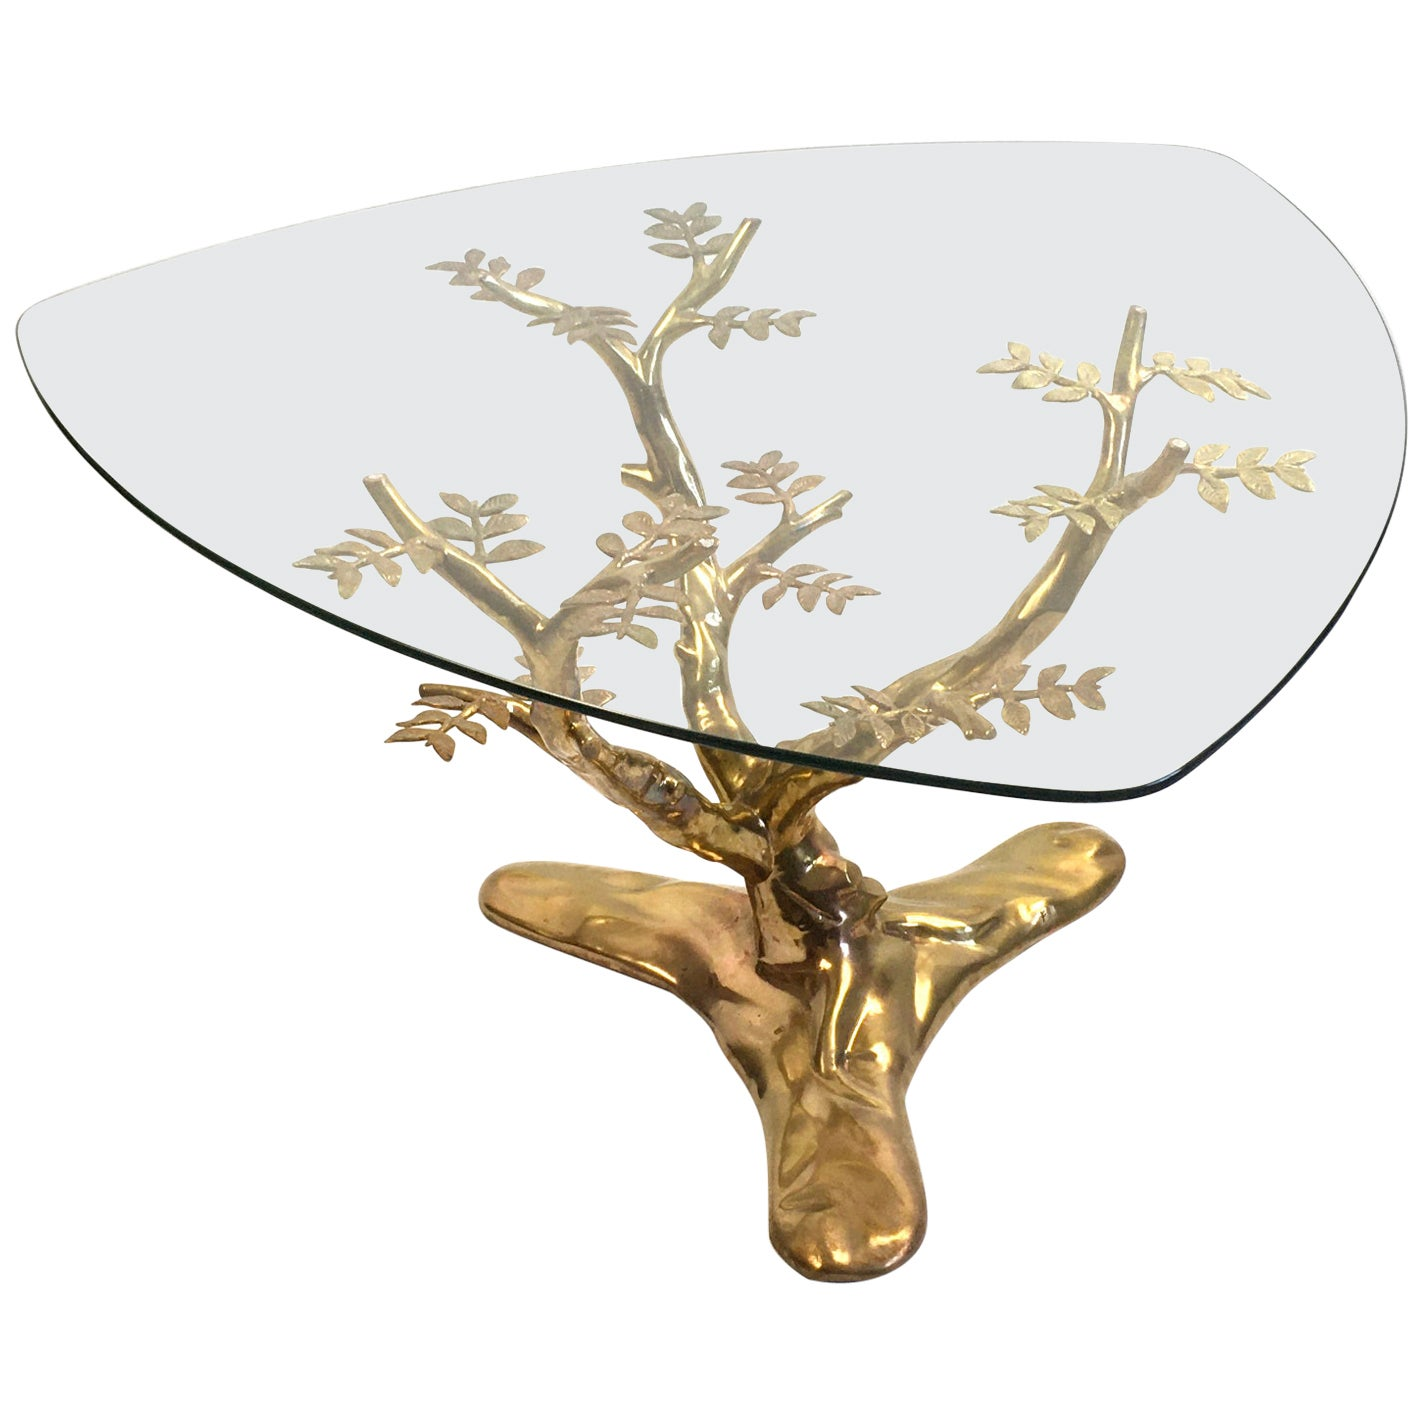 1970s Willy Daro Brass and Glass Tree Coffee Table, Belgium